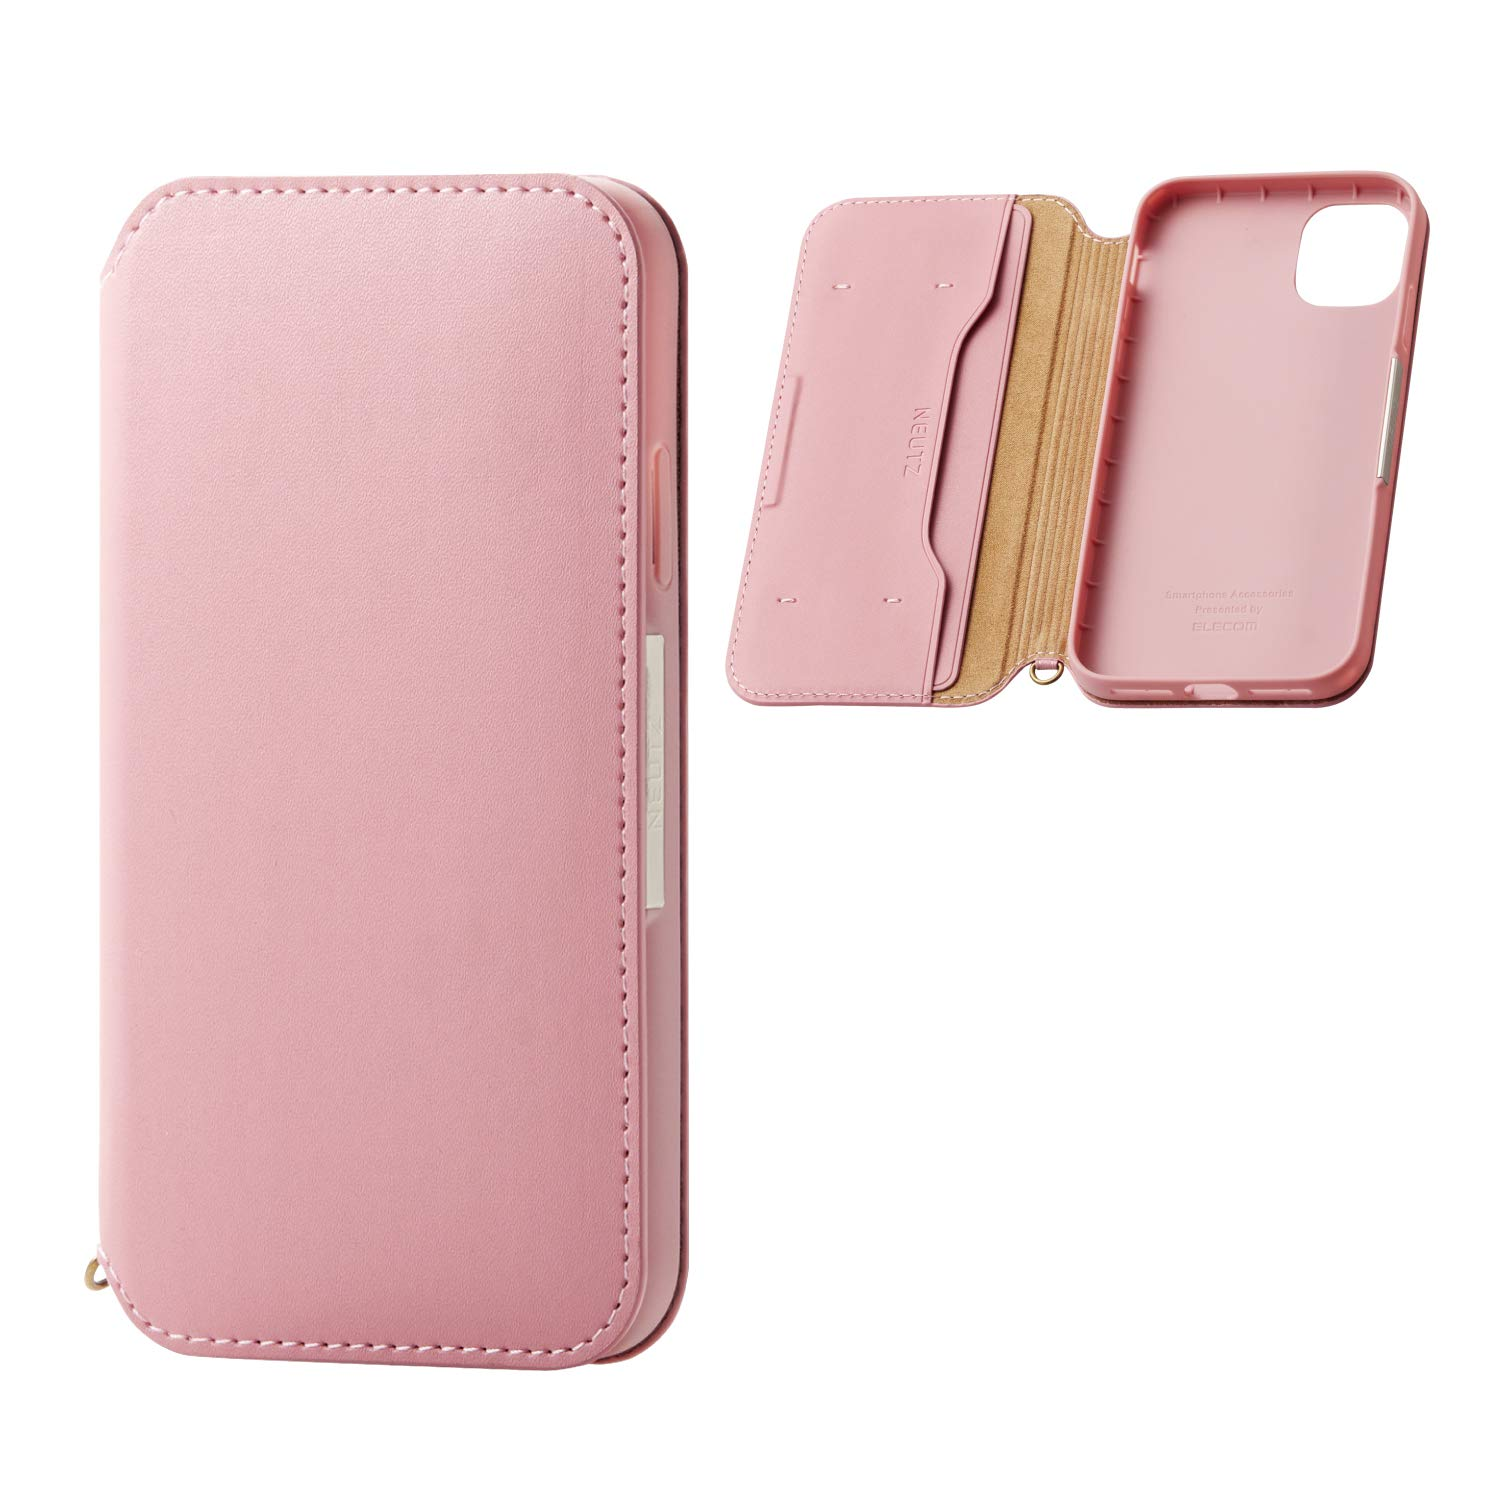 ELECOM-Japan Brand- Smartphone PU Leather Case Magnetic Type/Compatible with iPhone 11/ Pink/PM-A19CPLFY2PN